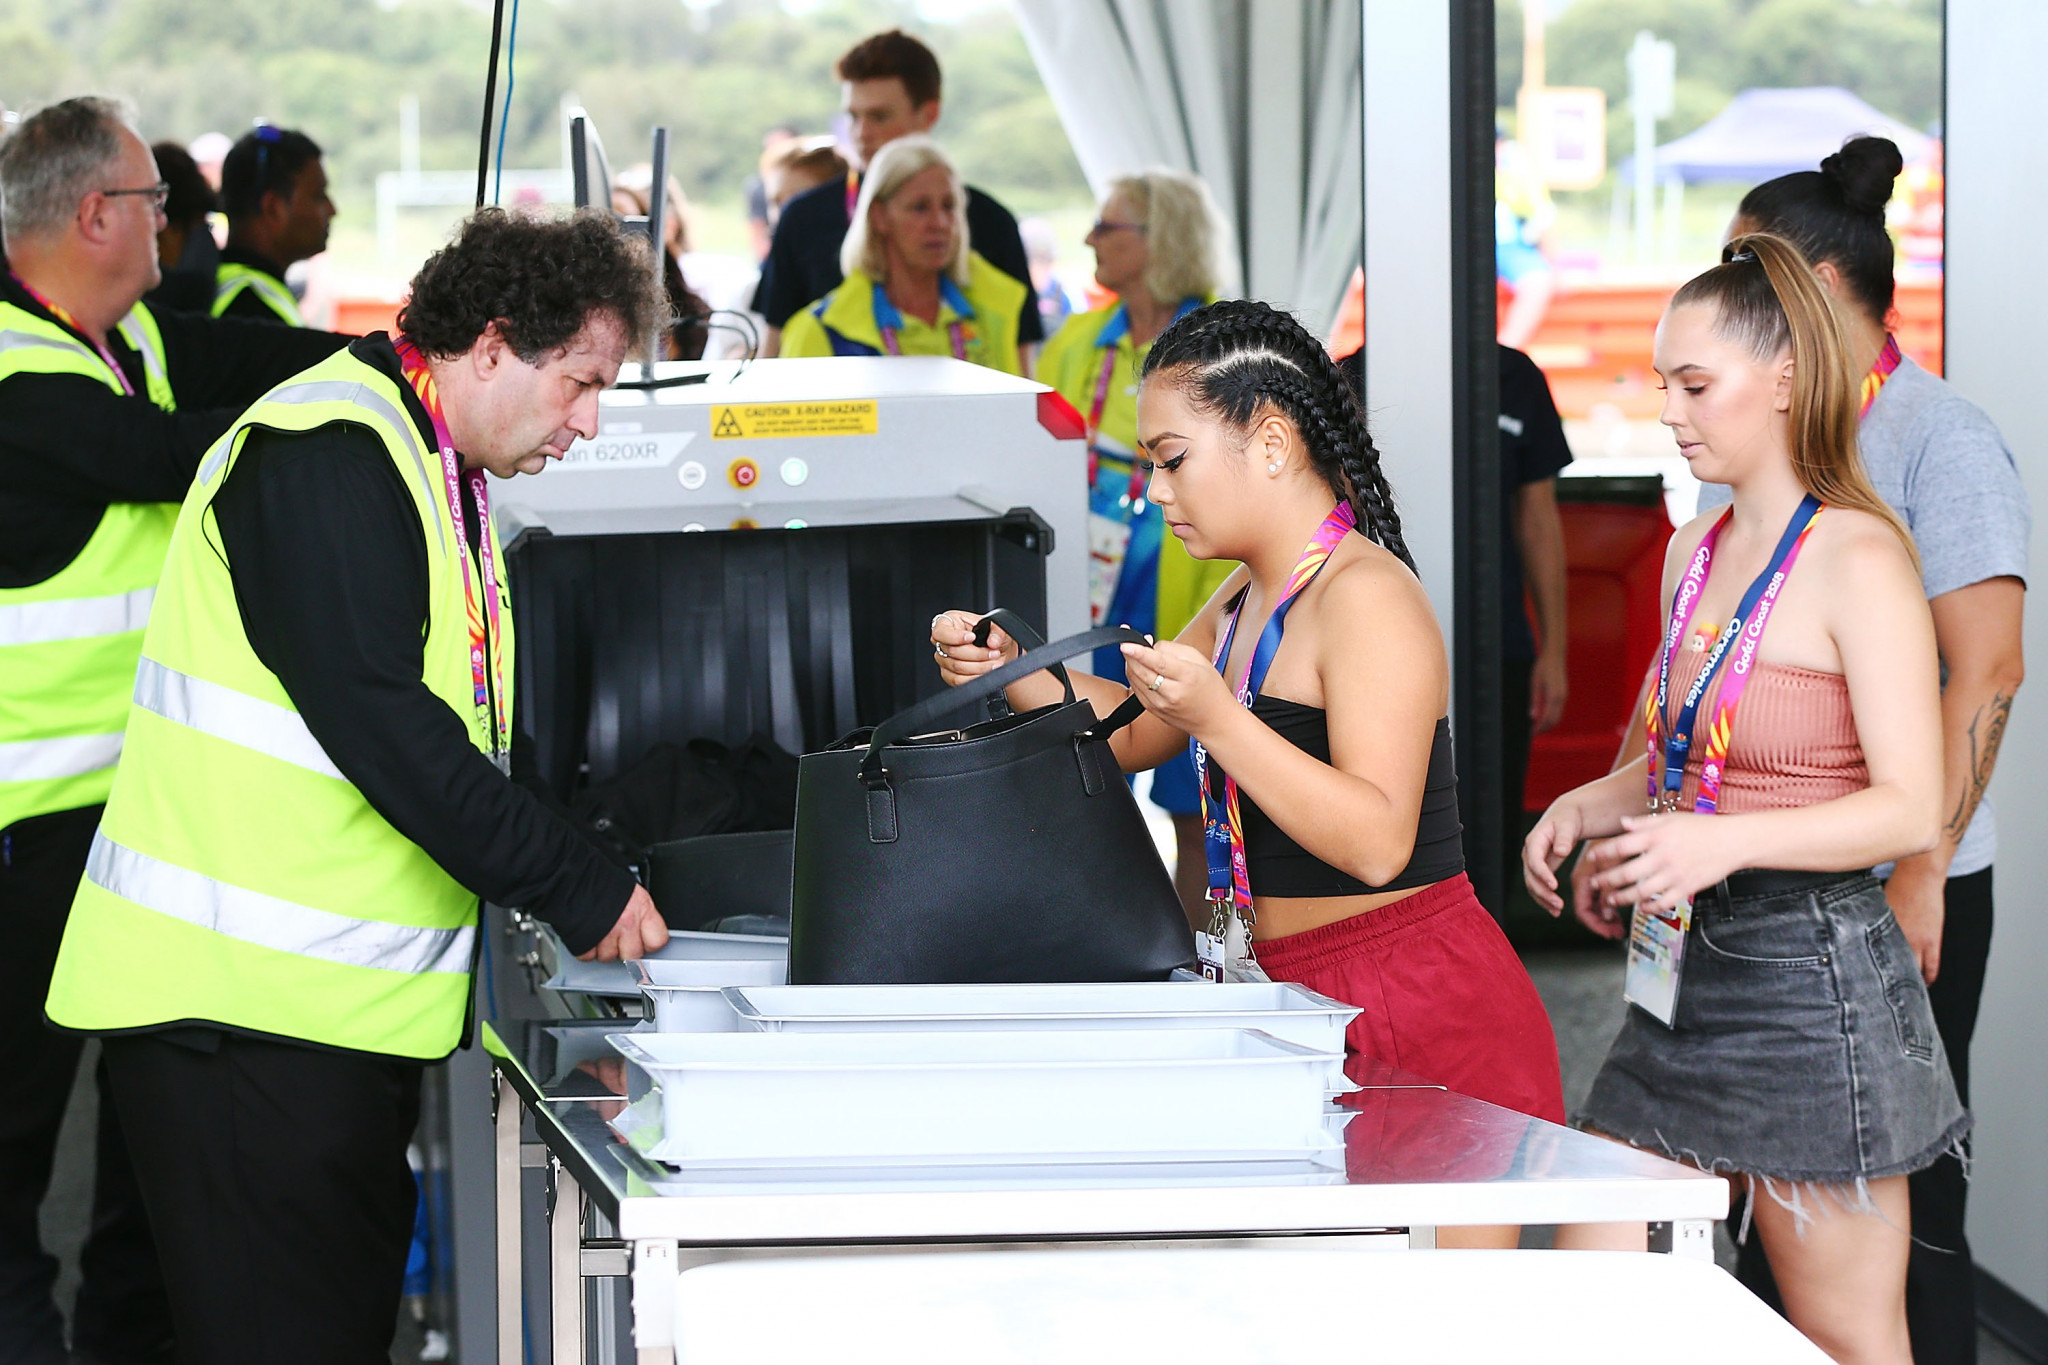 Security checks take place during the Gold Coast 2018 Commonwealth Games ©Getty Images